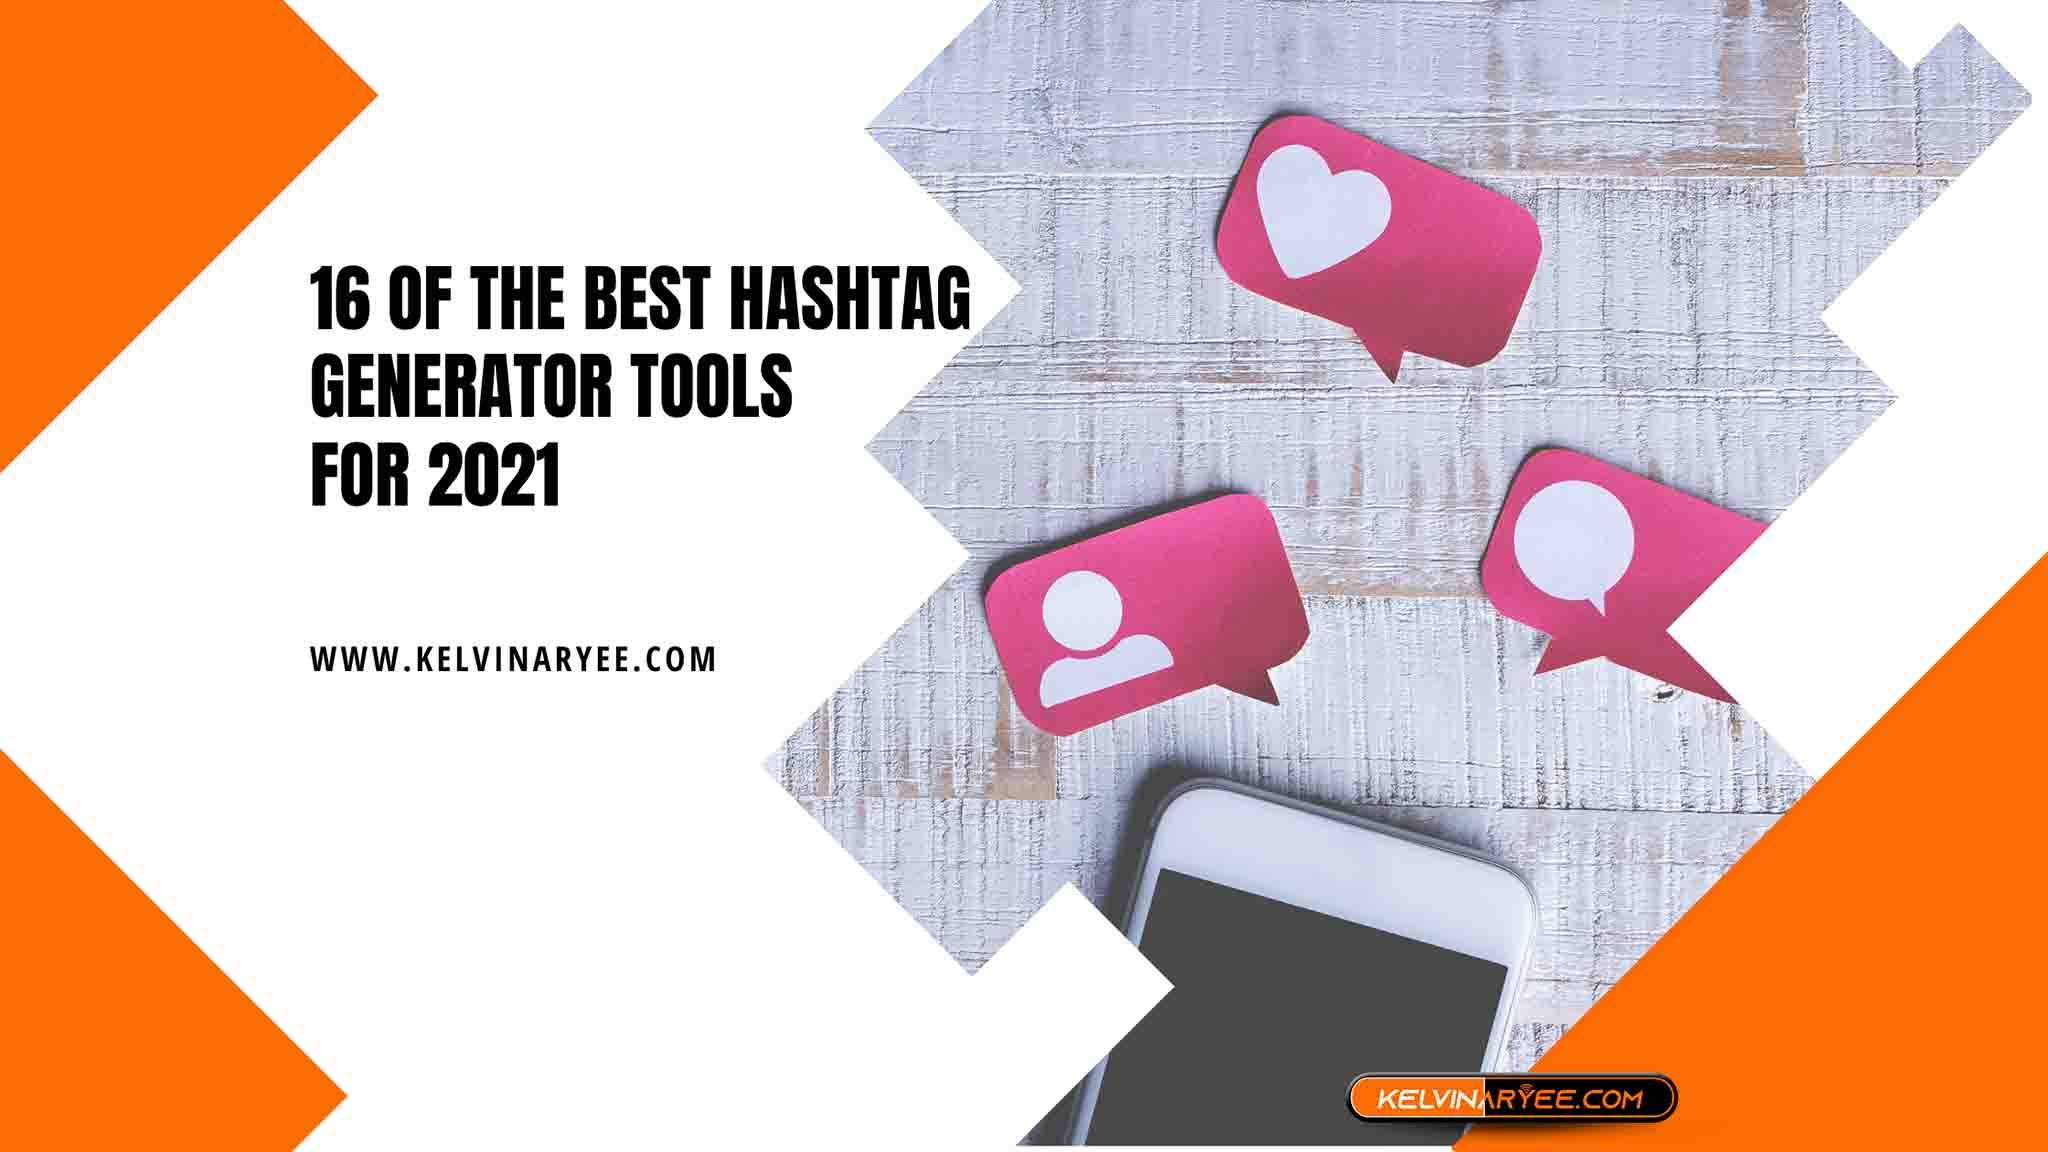 You are currently viewing 16 of the Best Hashtag Generator Tools for 2021